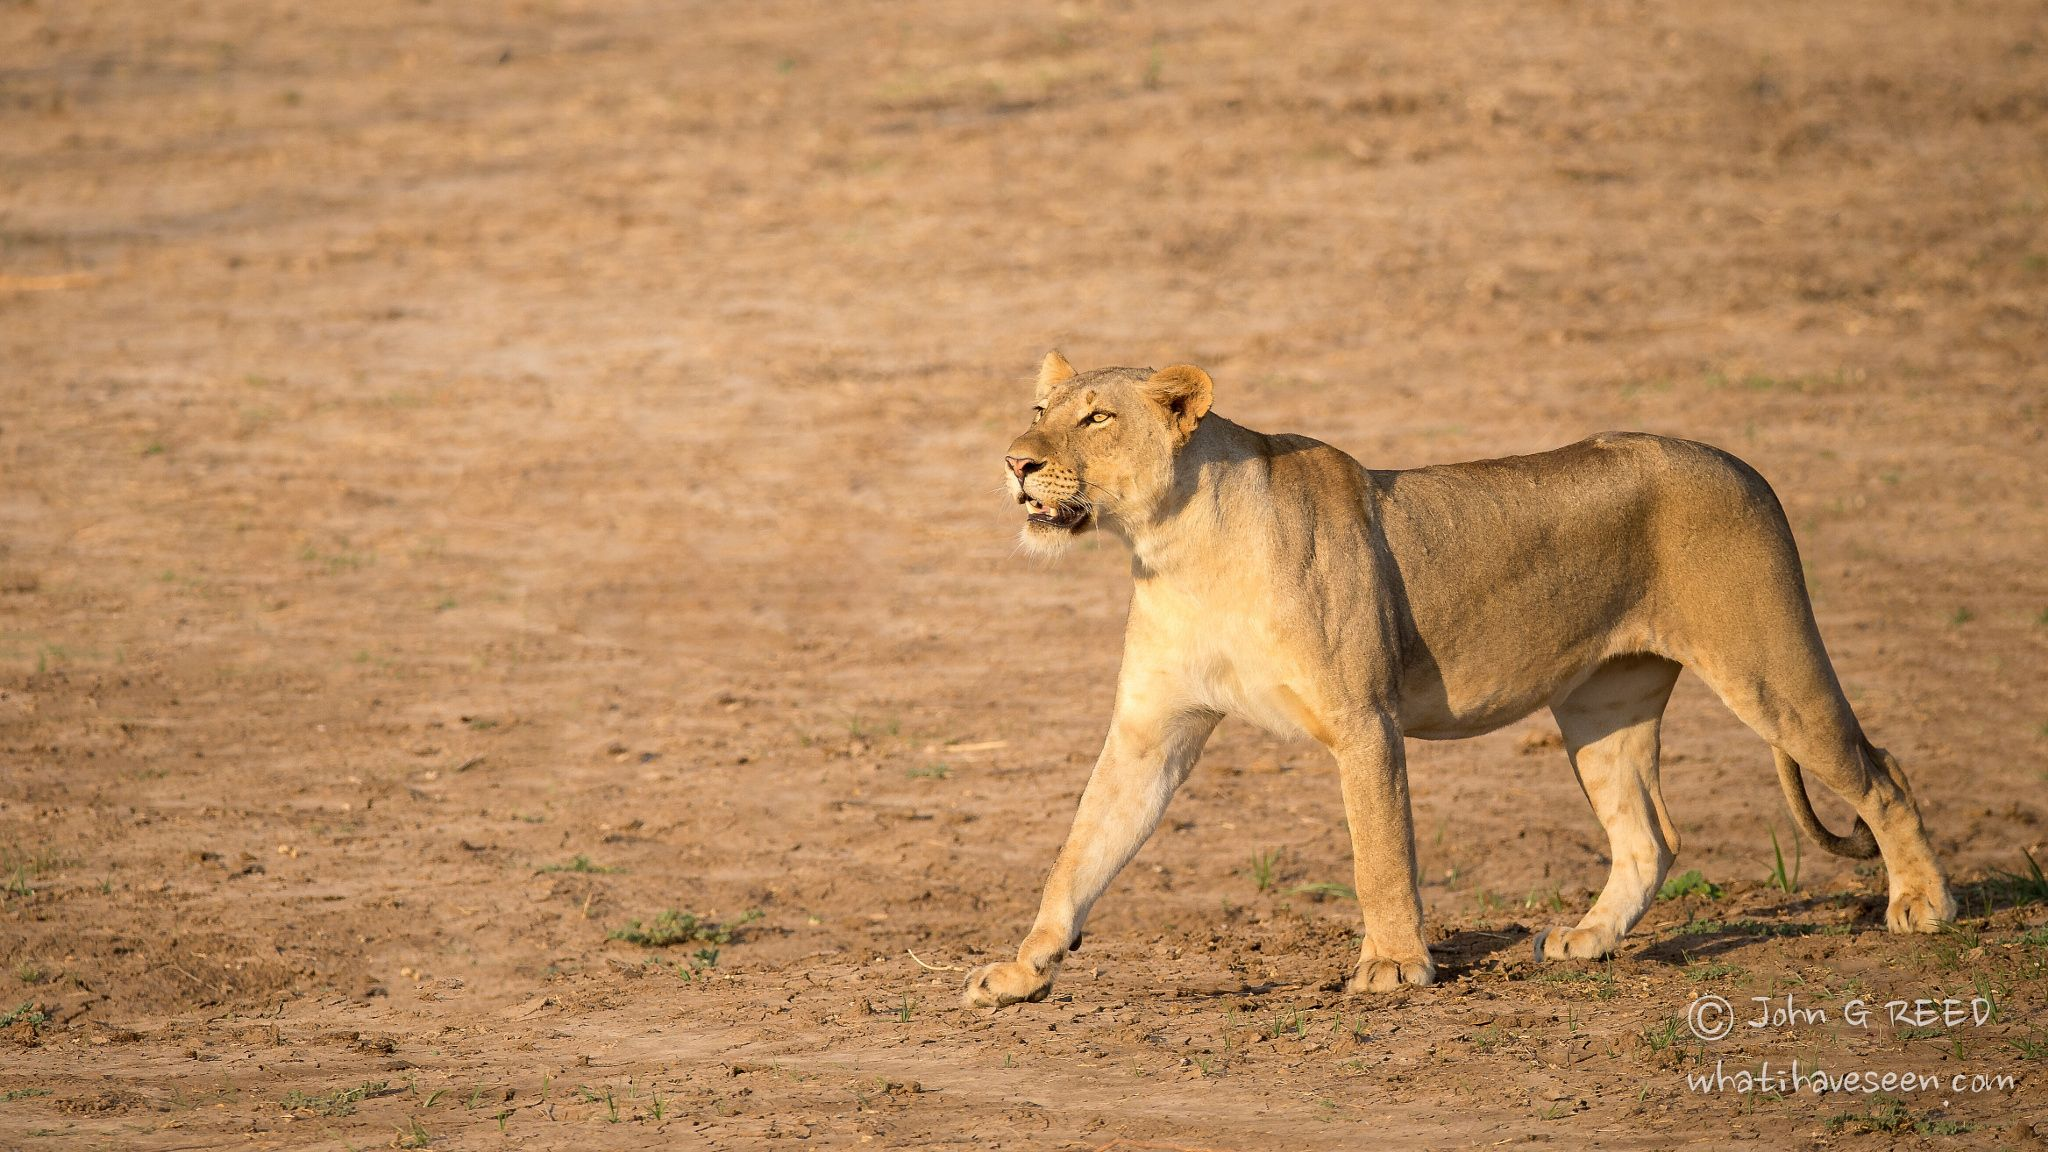 This lioness part of a group of nine took the scou ... - This lioness part of a group of nine took the scout position as the evening began to set in. The Guinea Fowl were not happy and she was looking at them.